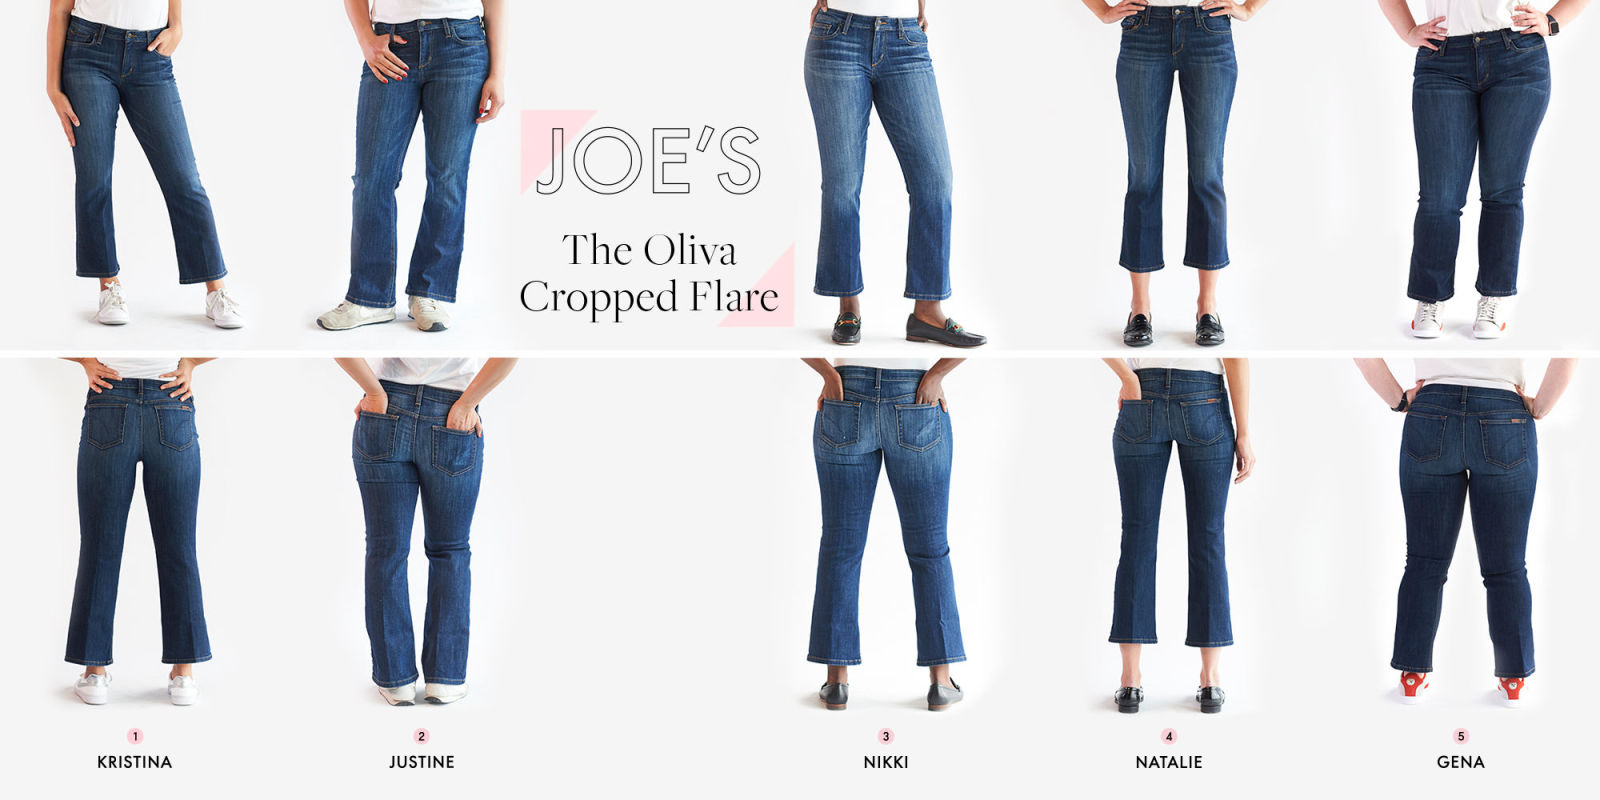 10 Best Types of Jeans for Women – Flattering Denim Styles for All